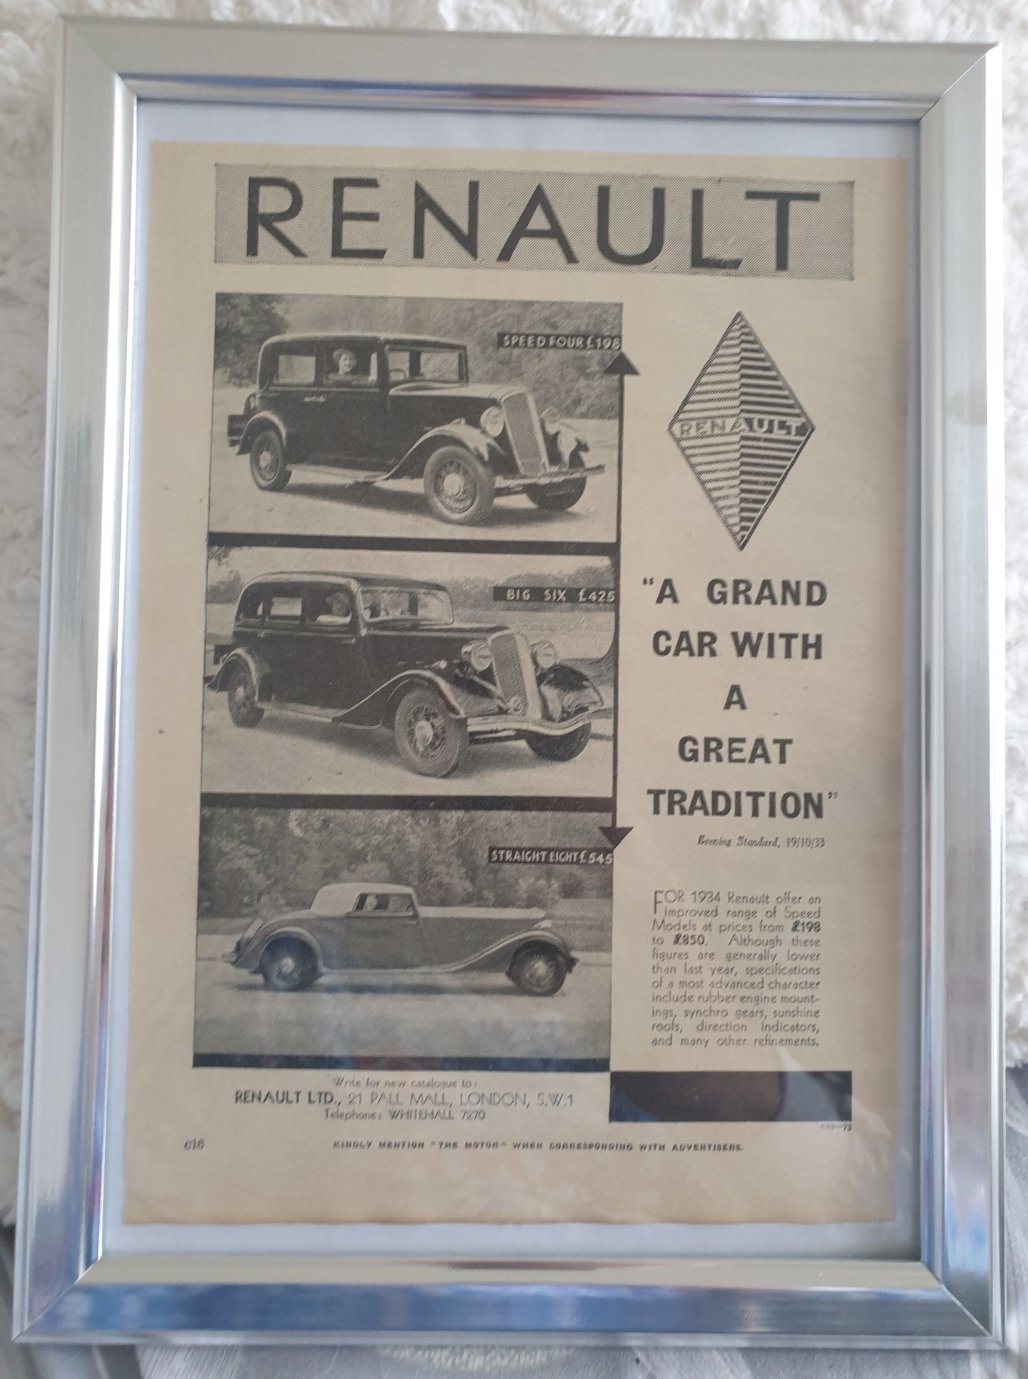 Picture of 1964 Original 1933 Renault Framed Advert For Sale